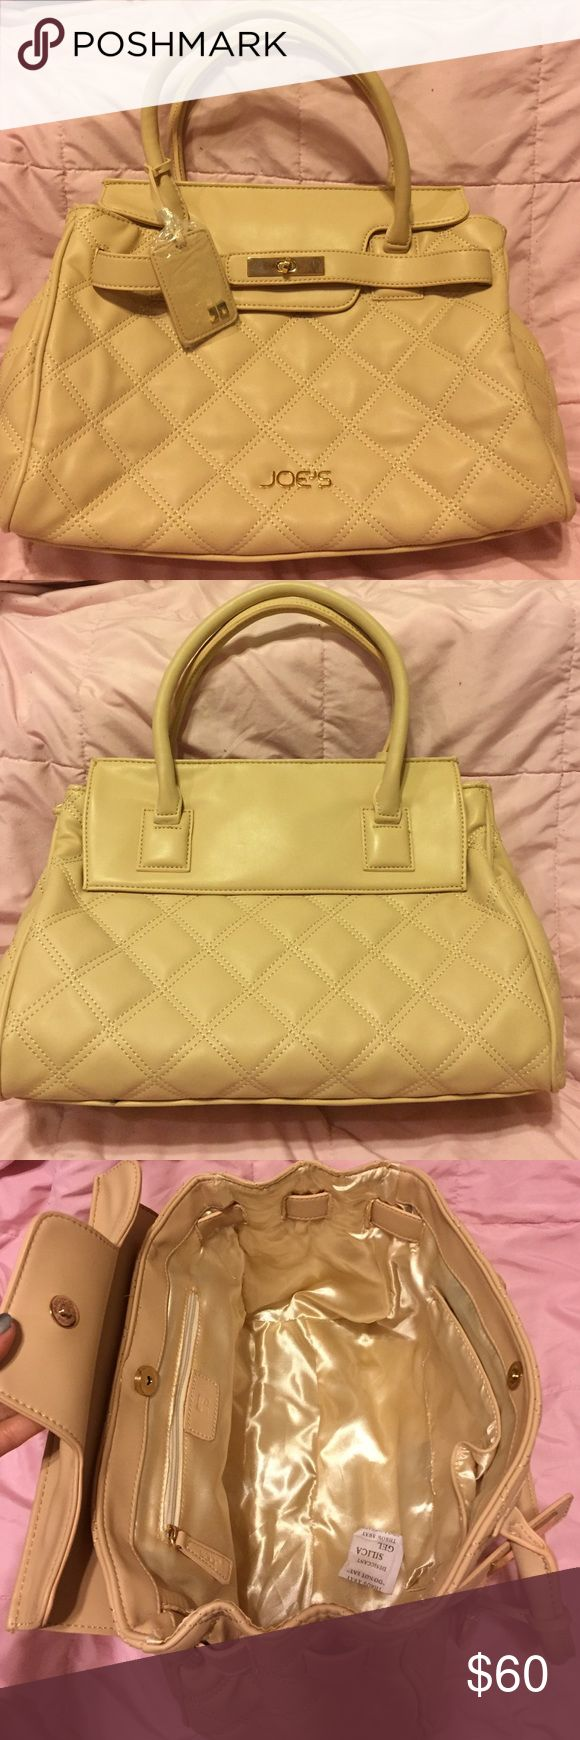 NWOT Authentic Joe's tan quilted handbag 👜 Made with 100% vegan leather this beauty is super soft and classy. Inside is 100% polyester. Has one large zipper pocket and two smaller ones on the opposite side. Magnetic closure and a flap that goes over and attaches to the outside of the purse so no one can see inside. Gold hardware. Super roomy! Happy to take more pictures upon request! Joe's Jeans Bags